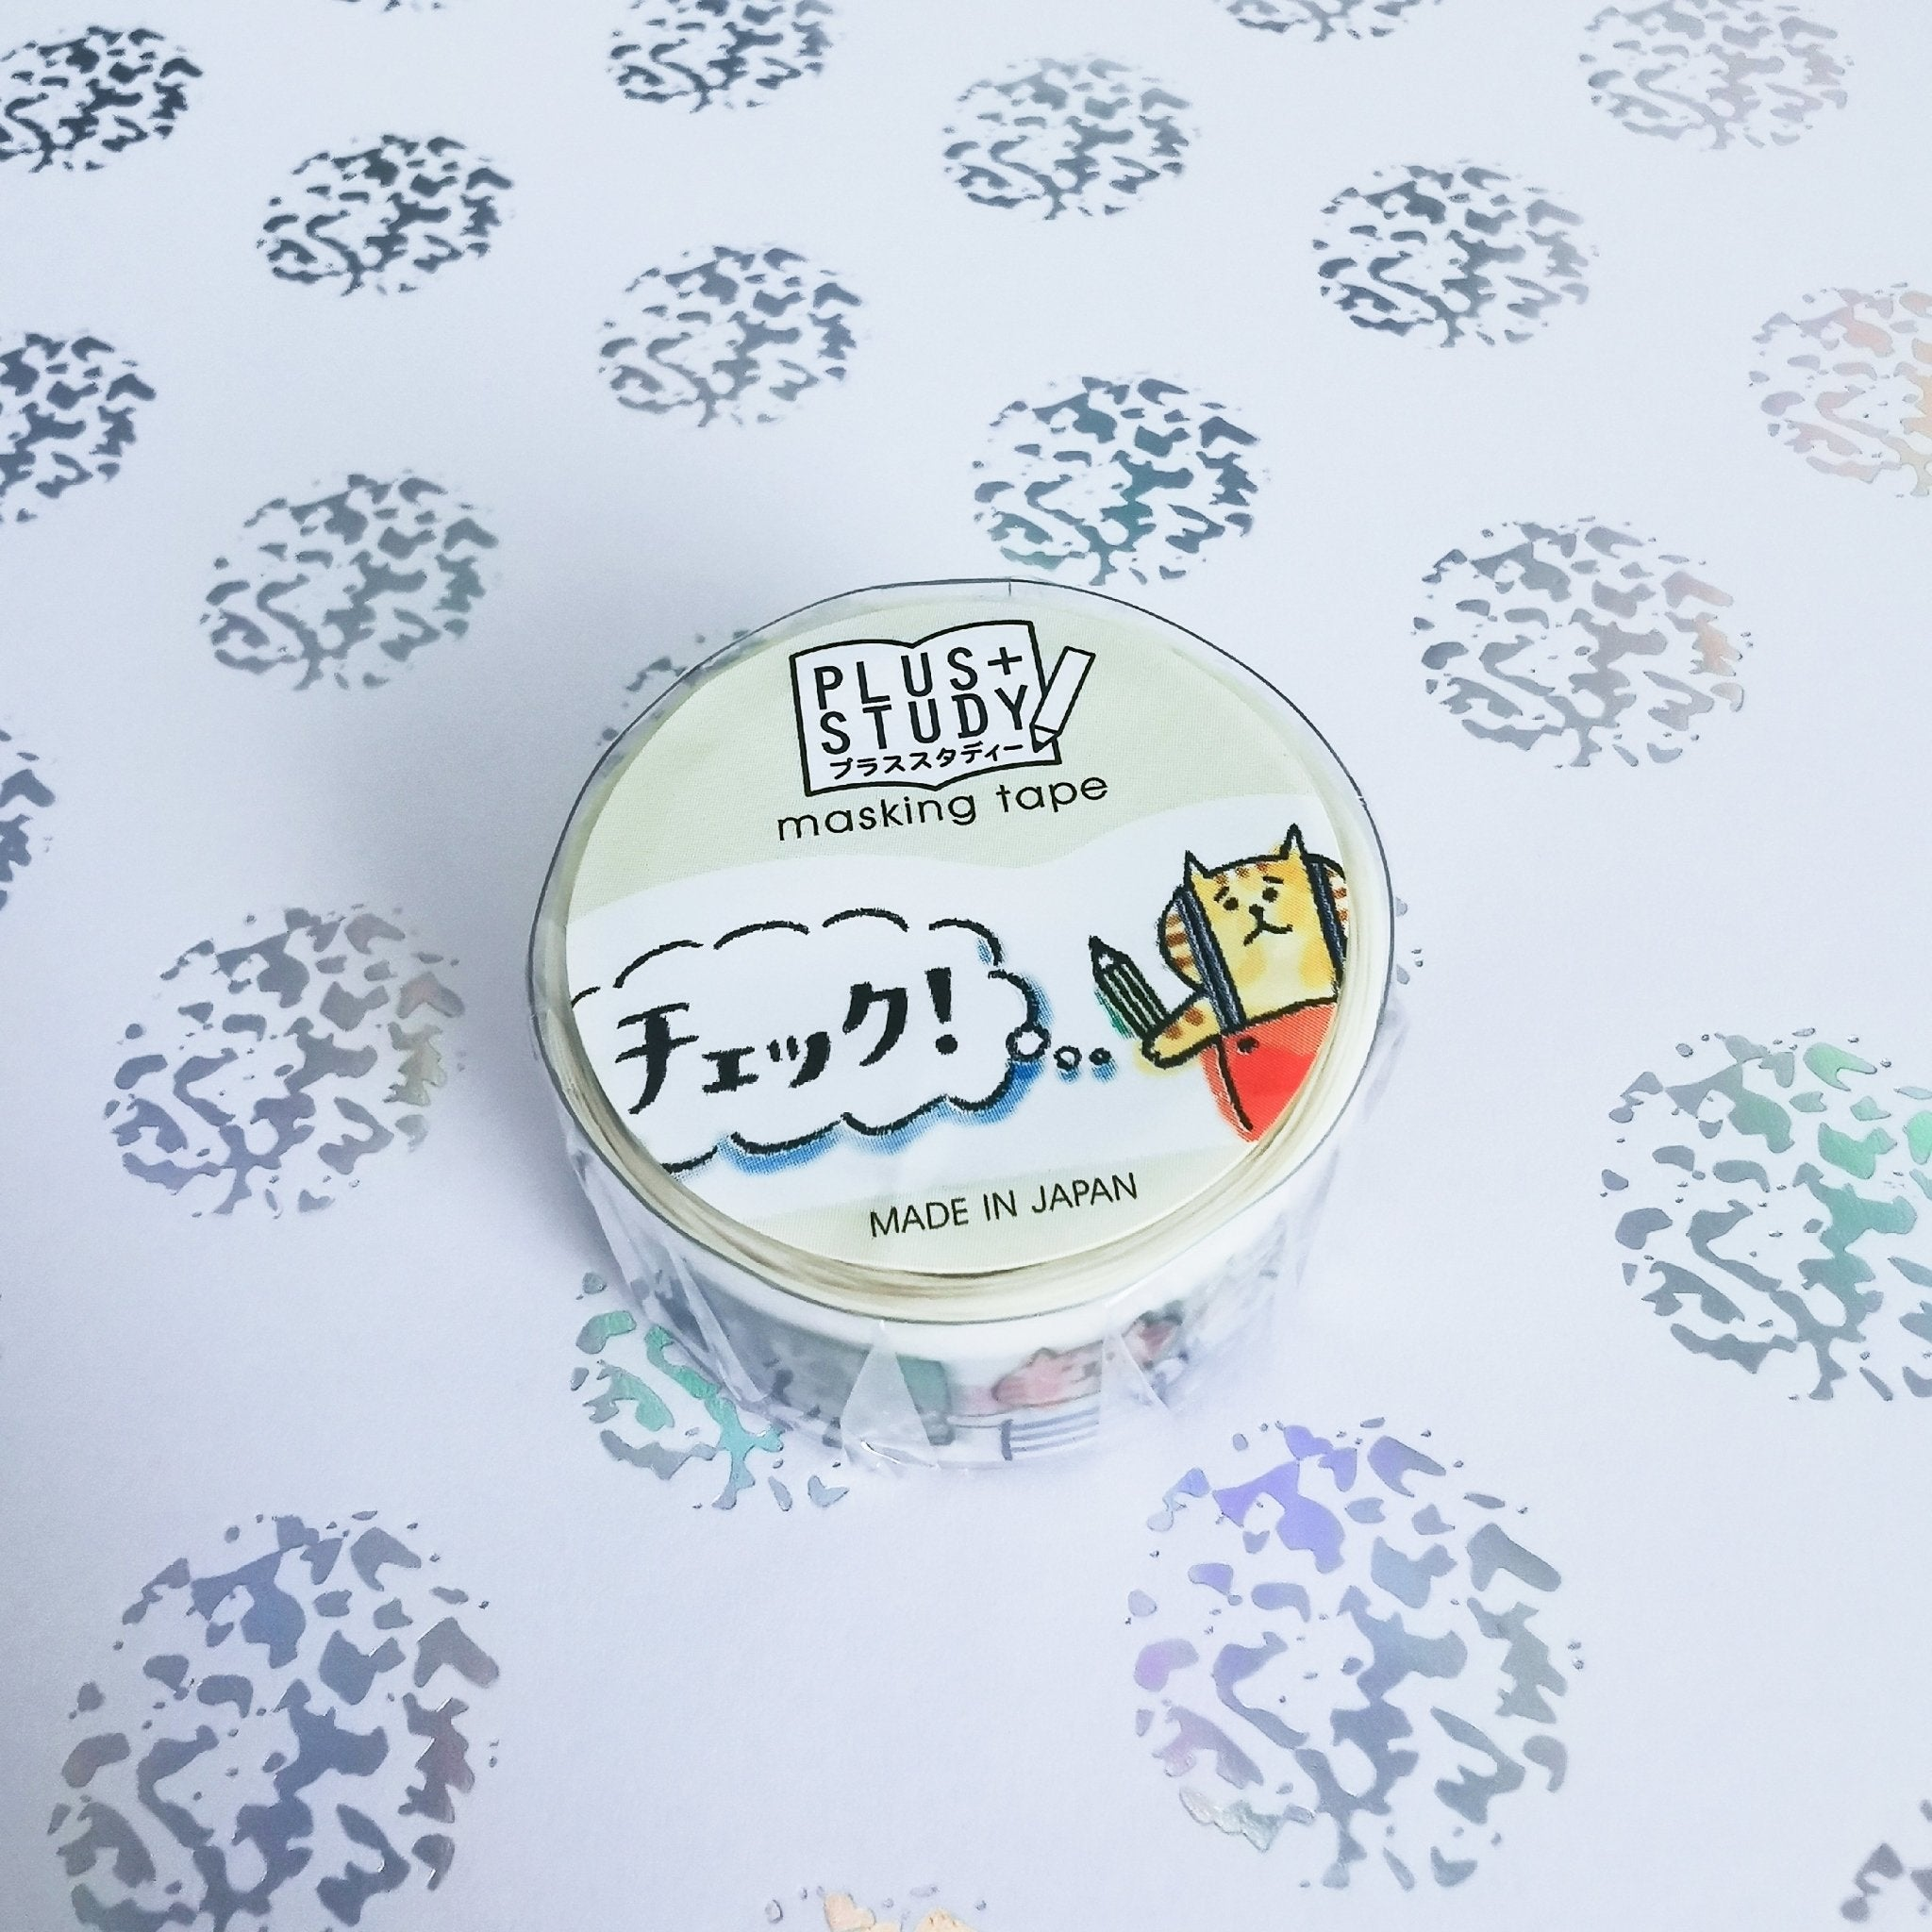 Washi Tape - Check! - Sutoru - Washi Tape - PLUS+STUDY